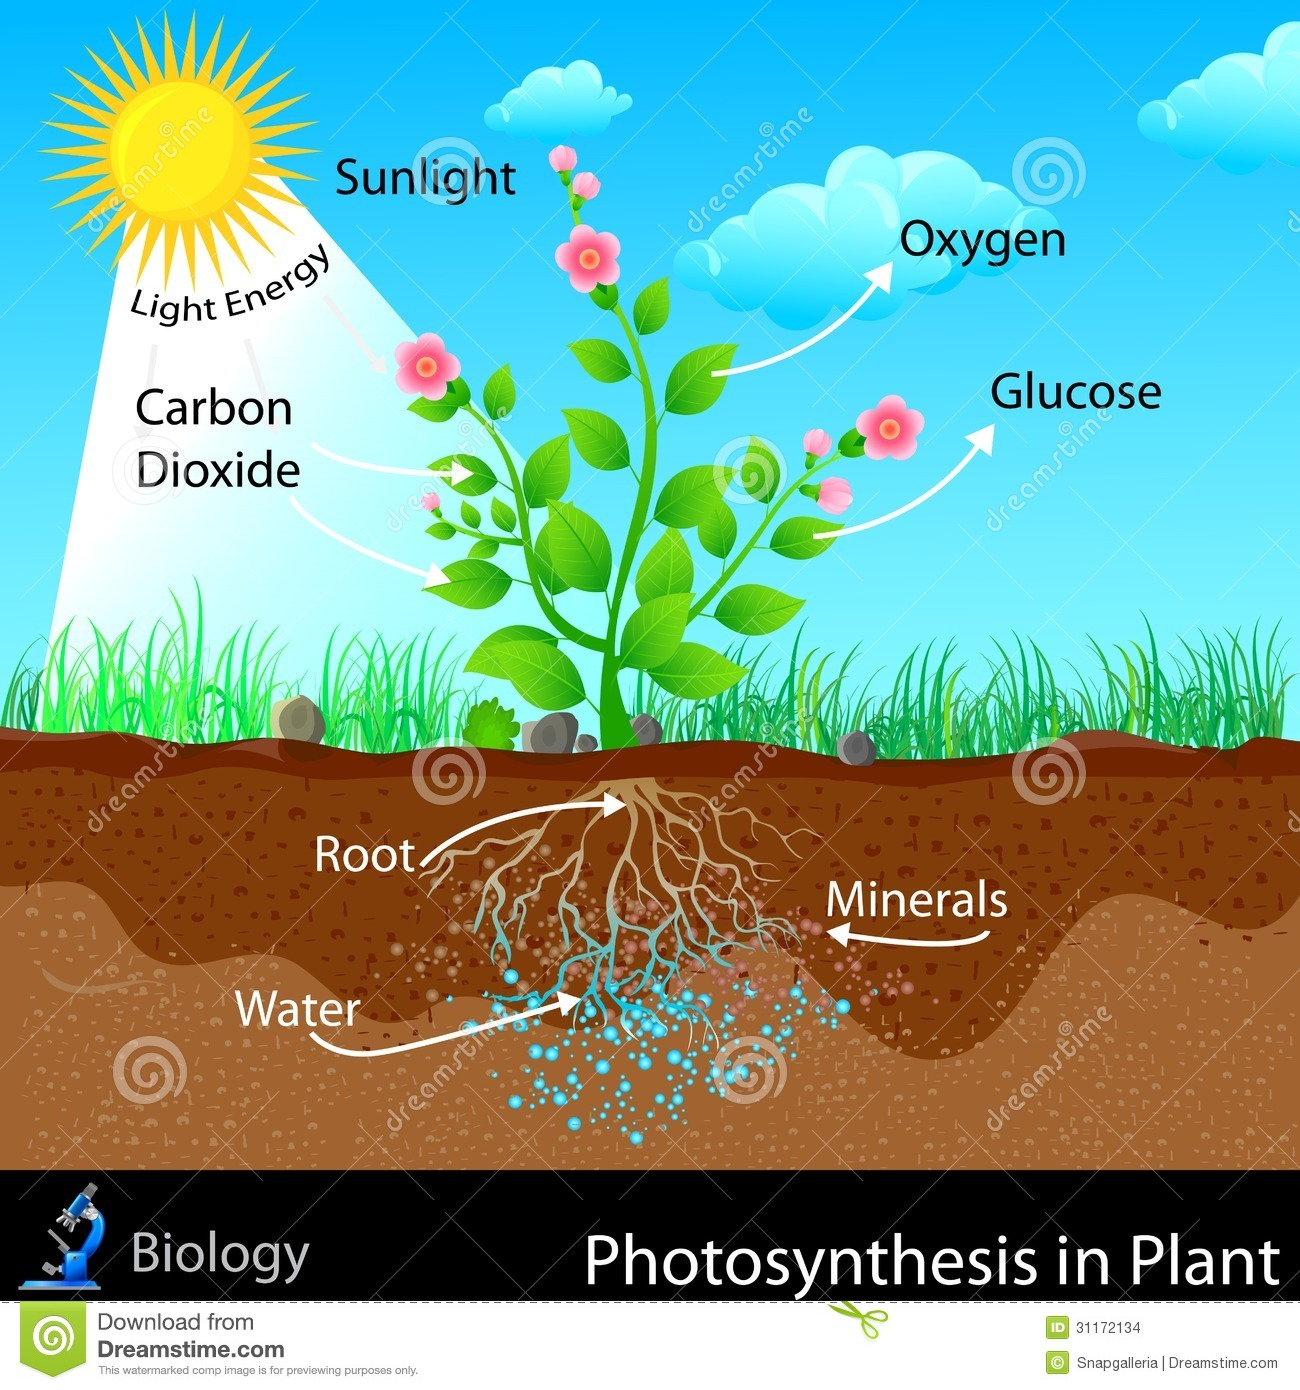 Easy to edit vector illustration of photosynthesis in plant.